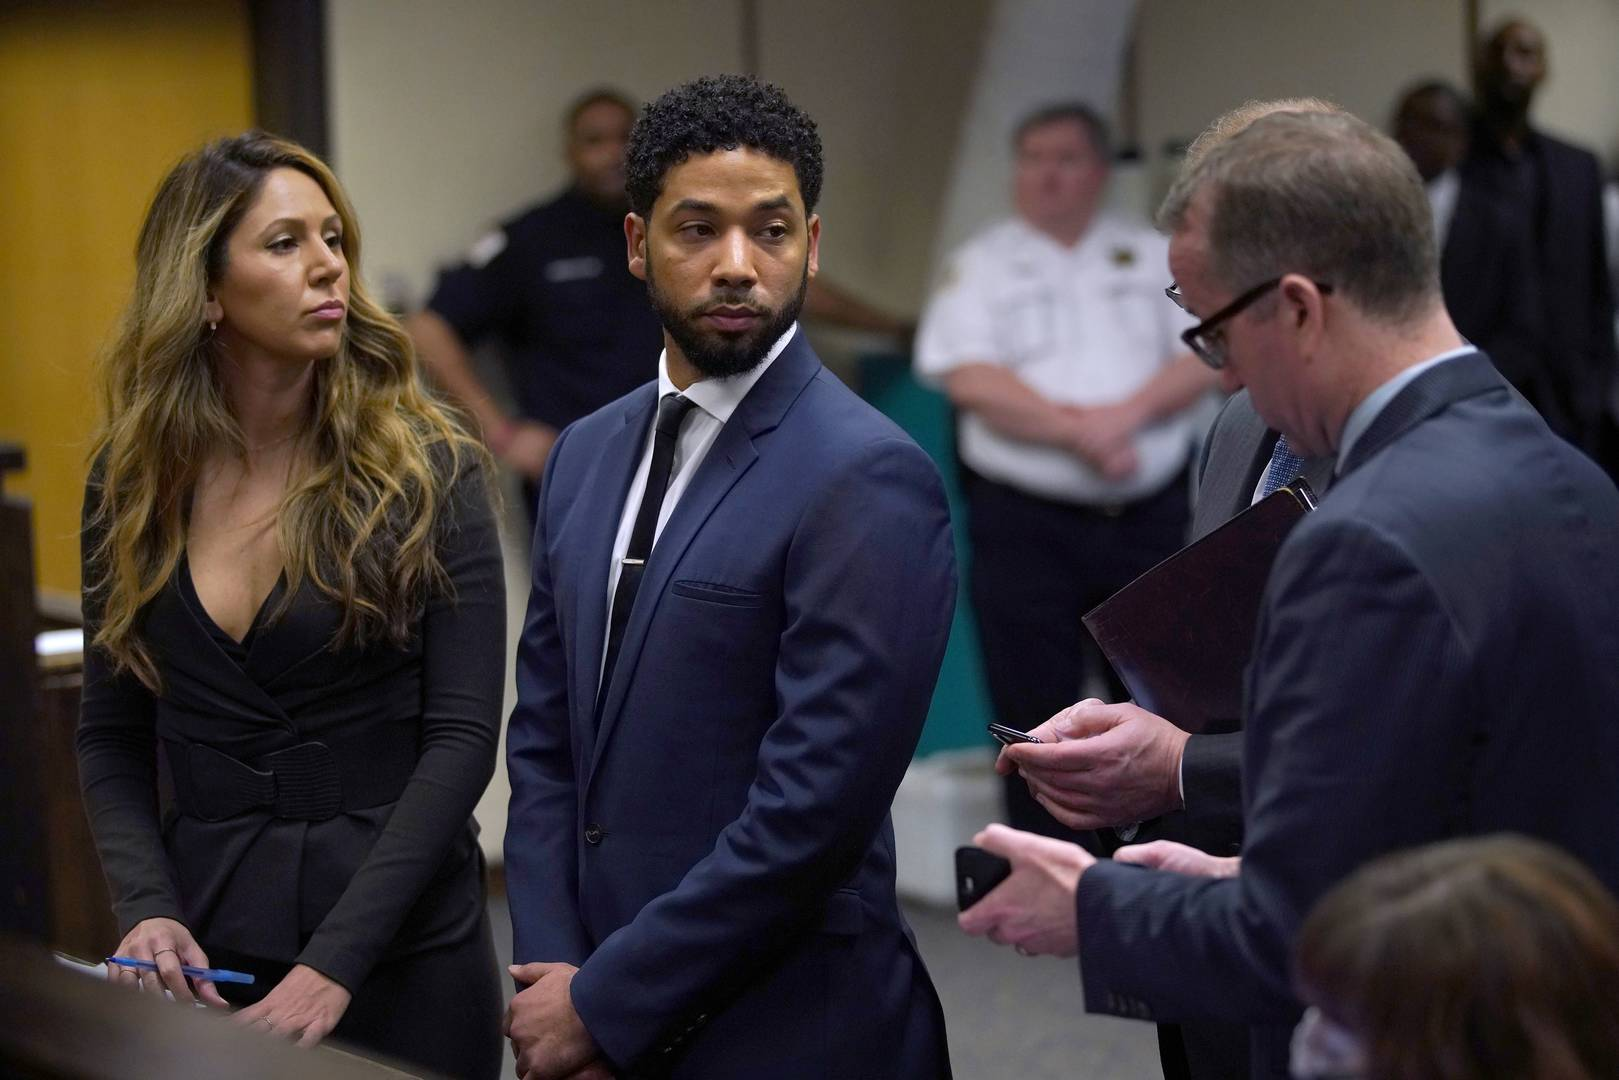 Foxx thought 16 counts against Jussie Smollett was 'overcharging'